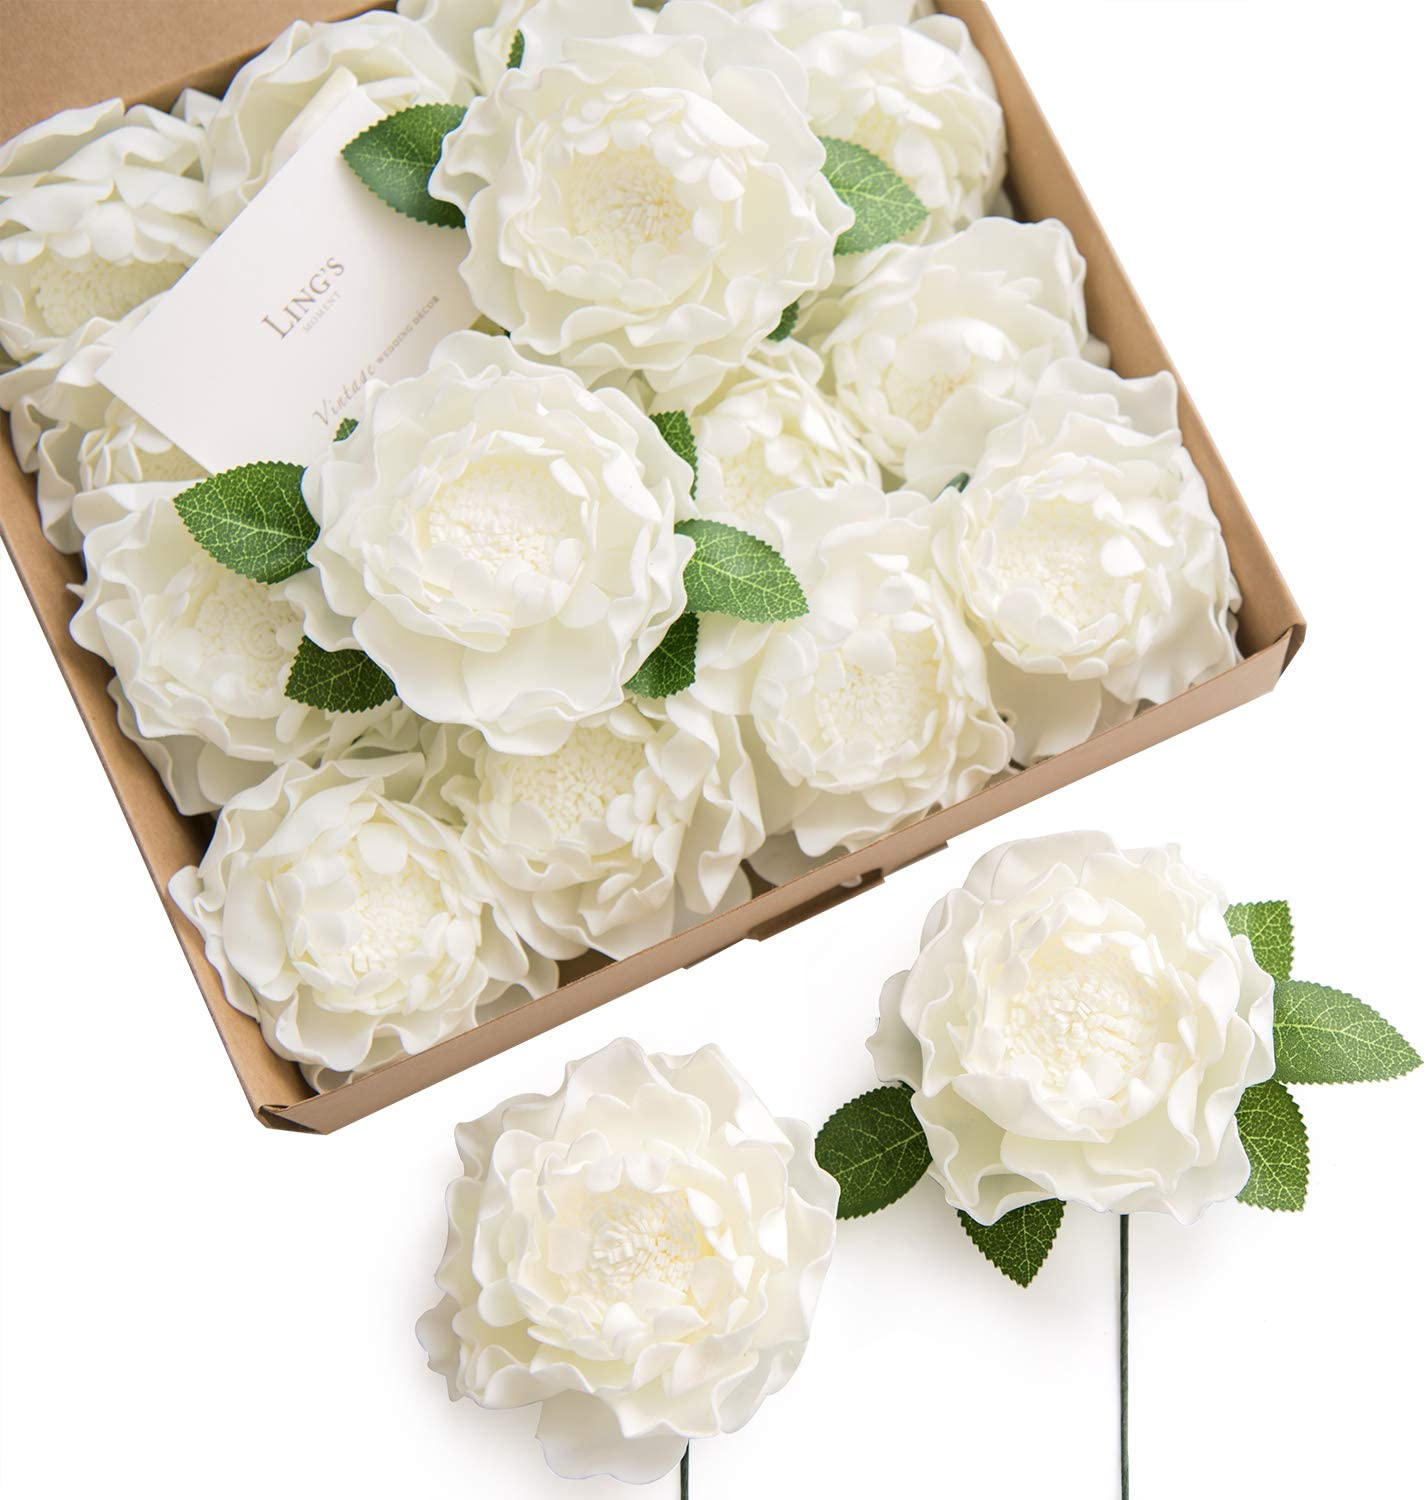 """Ling's moment 16pcs 4"""" Ivory Blooming Peonies Real Touch Artificial Peonies Flower Real Looking Fake Peony w/Stem DIY Wedding Bouquet Centerpieces Reception Arrangements Party Baby Shower Home Décor"""